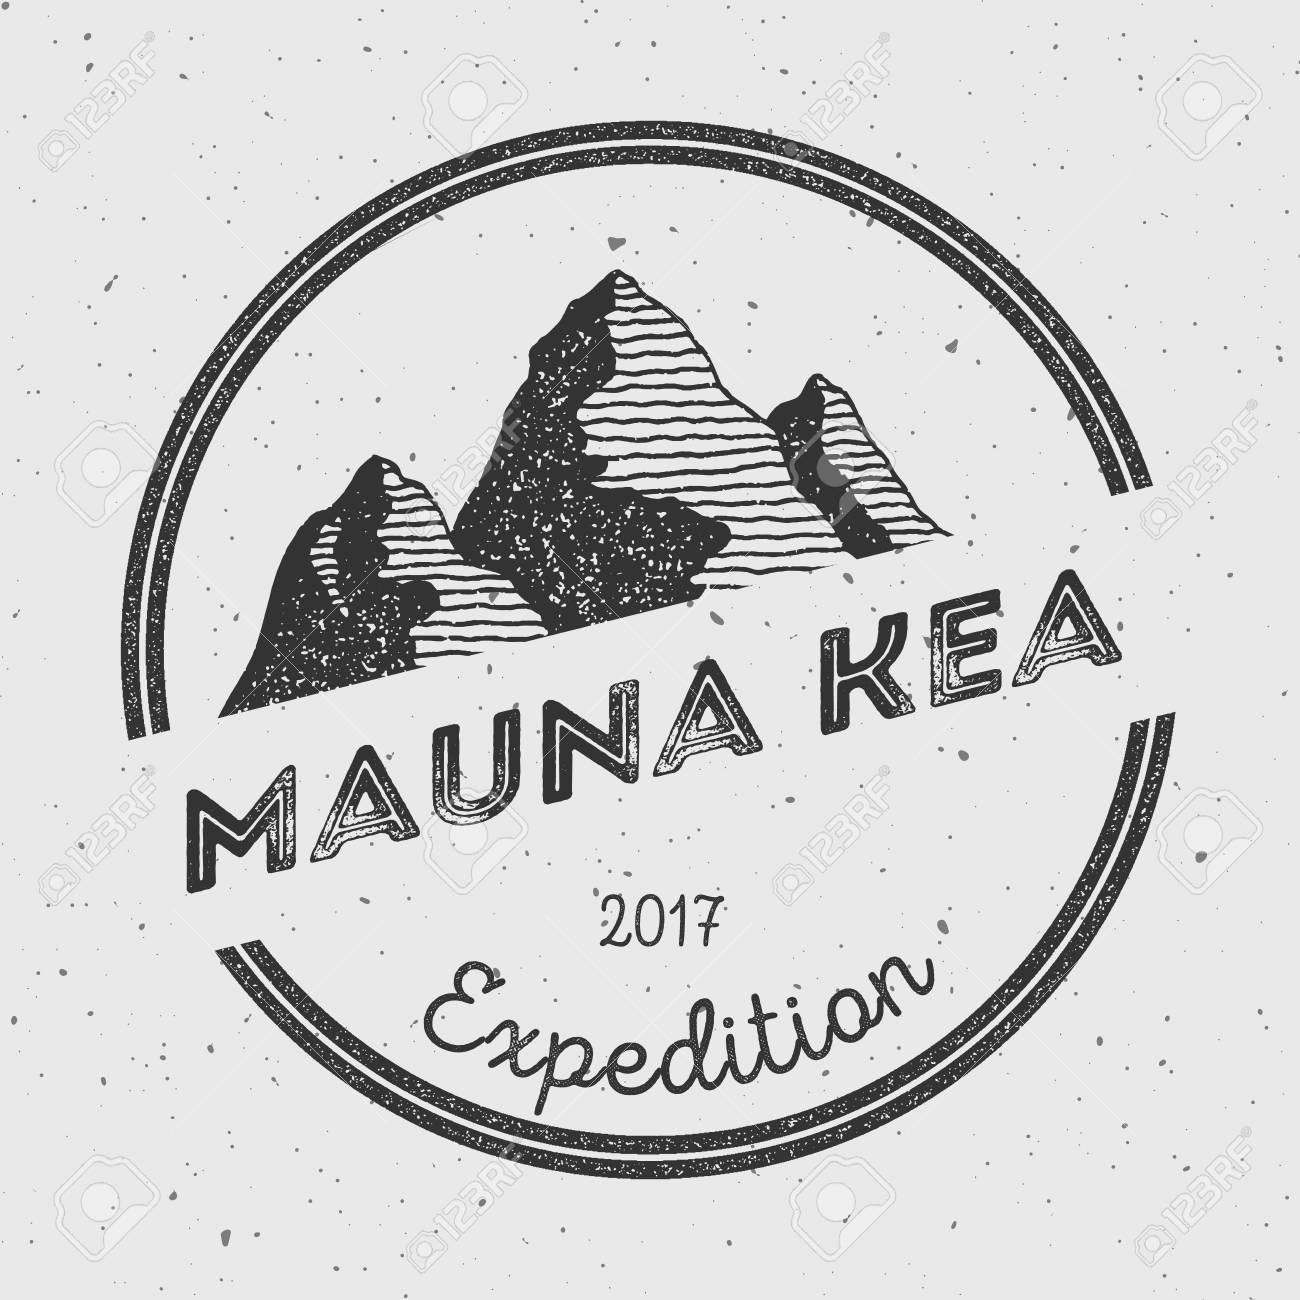 Mauna Kea in Hawaii, USA outdoor adventure logo  Round expedition